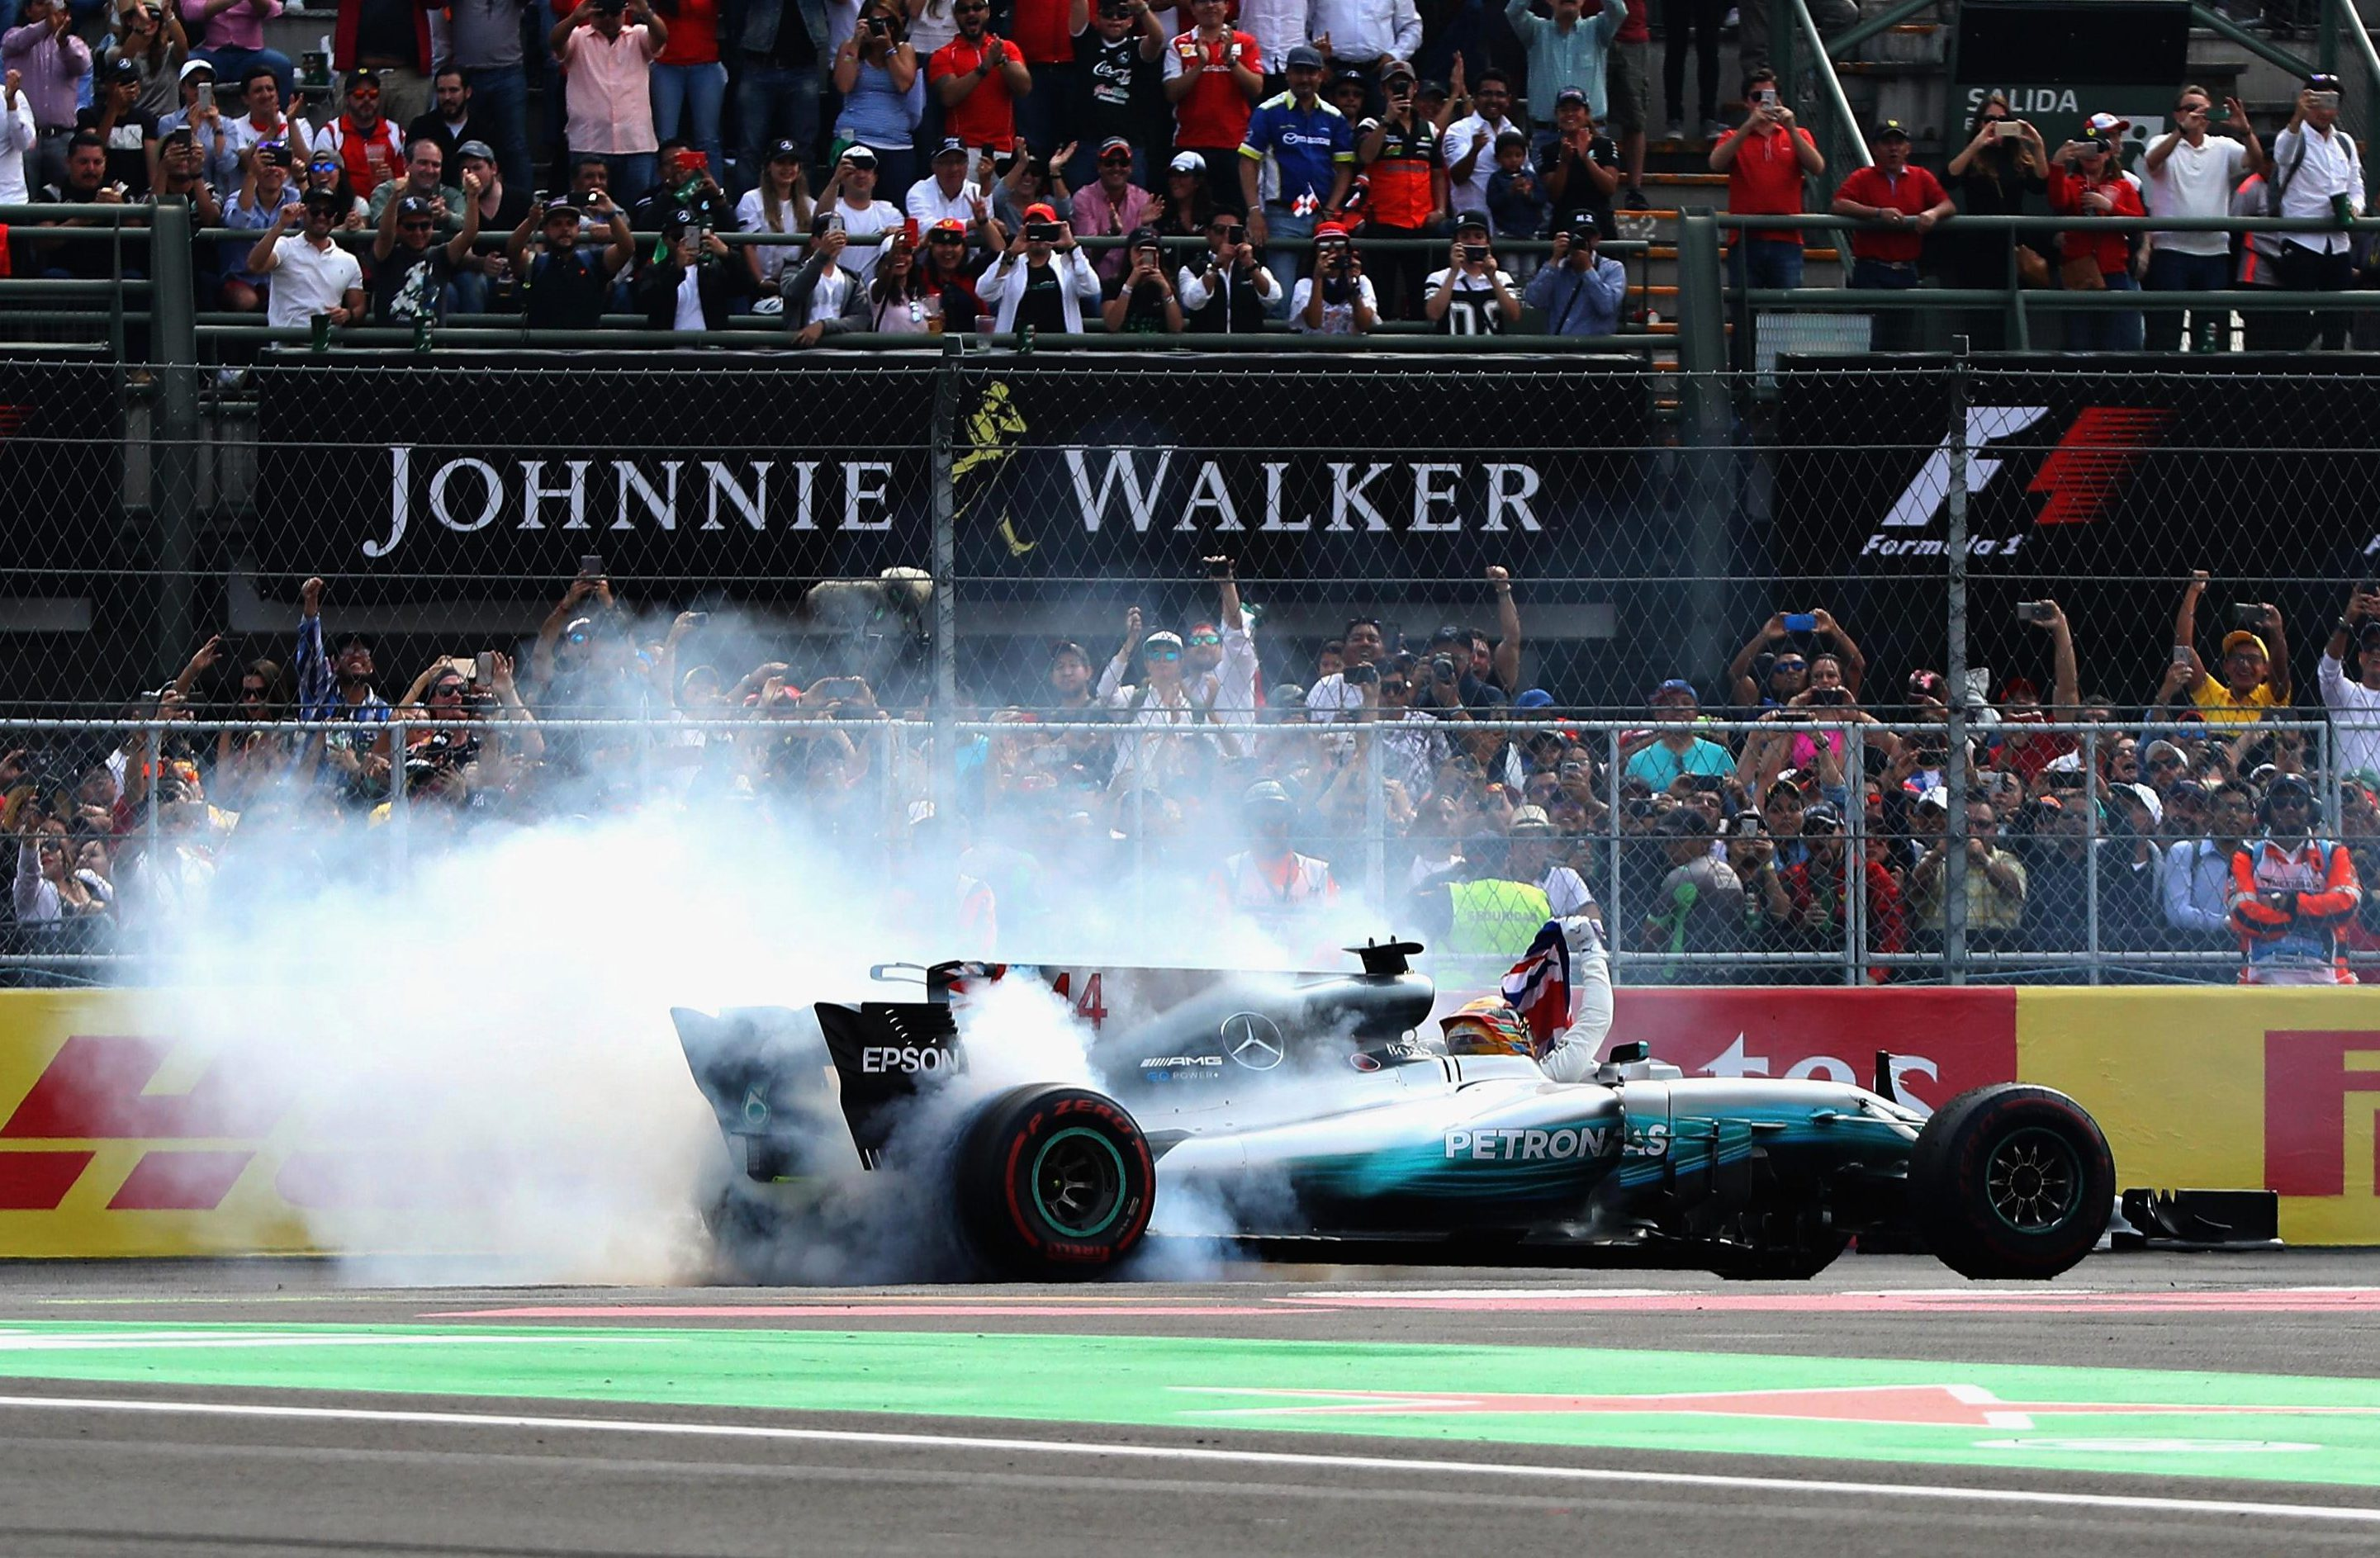 Lewis Hamilton celebrates his drivers' championship win by performing a donut